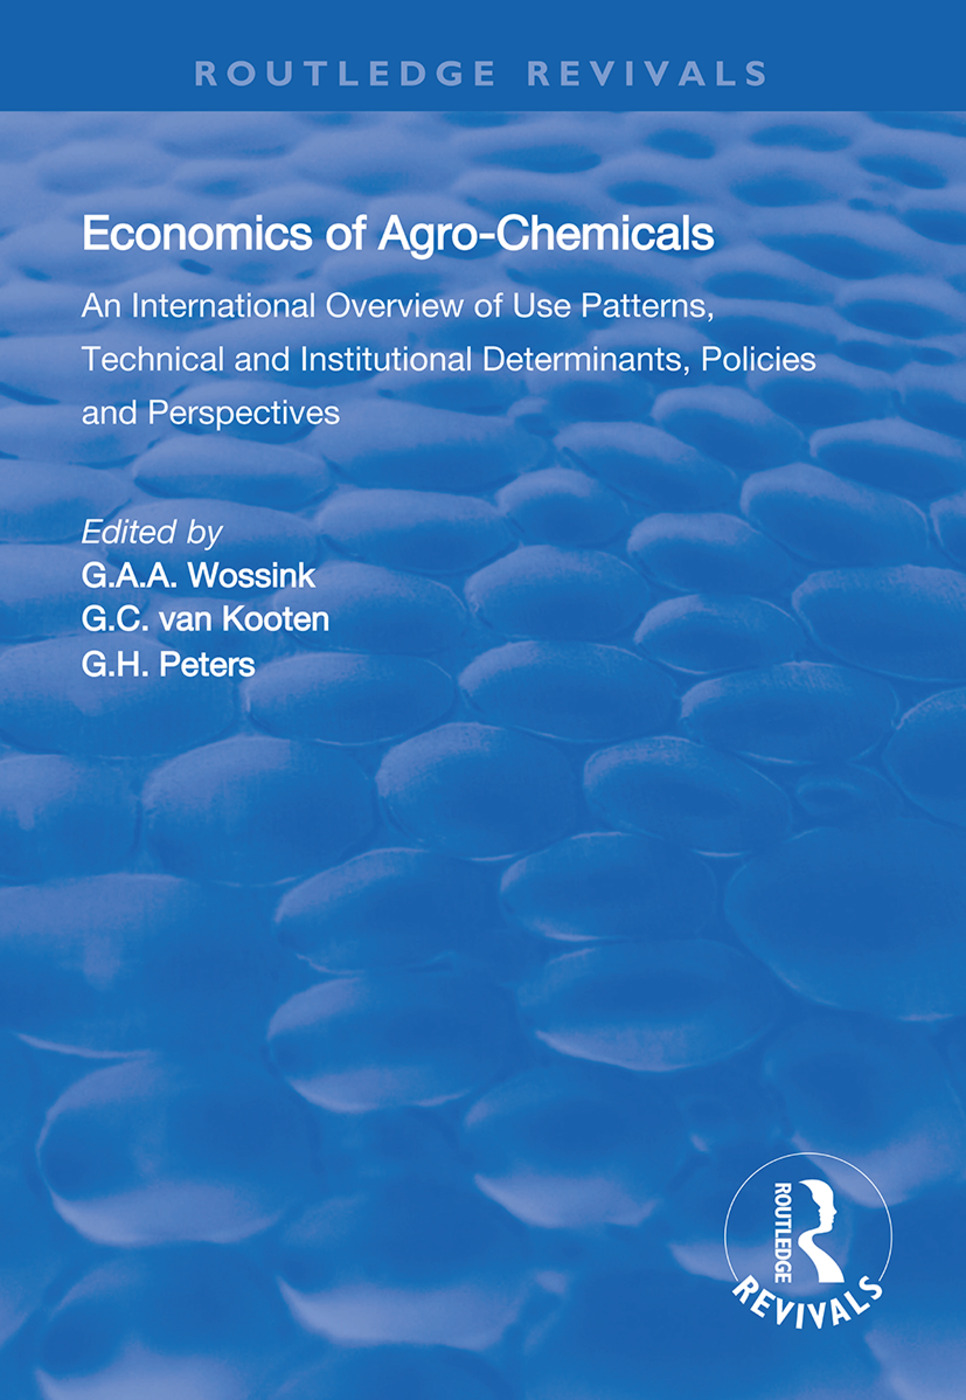 The Economics of Agro-Chemicals: An International Overview of Use Patterns, Technical and Institutional Determinants, Policies and Perspectives book cover